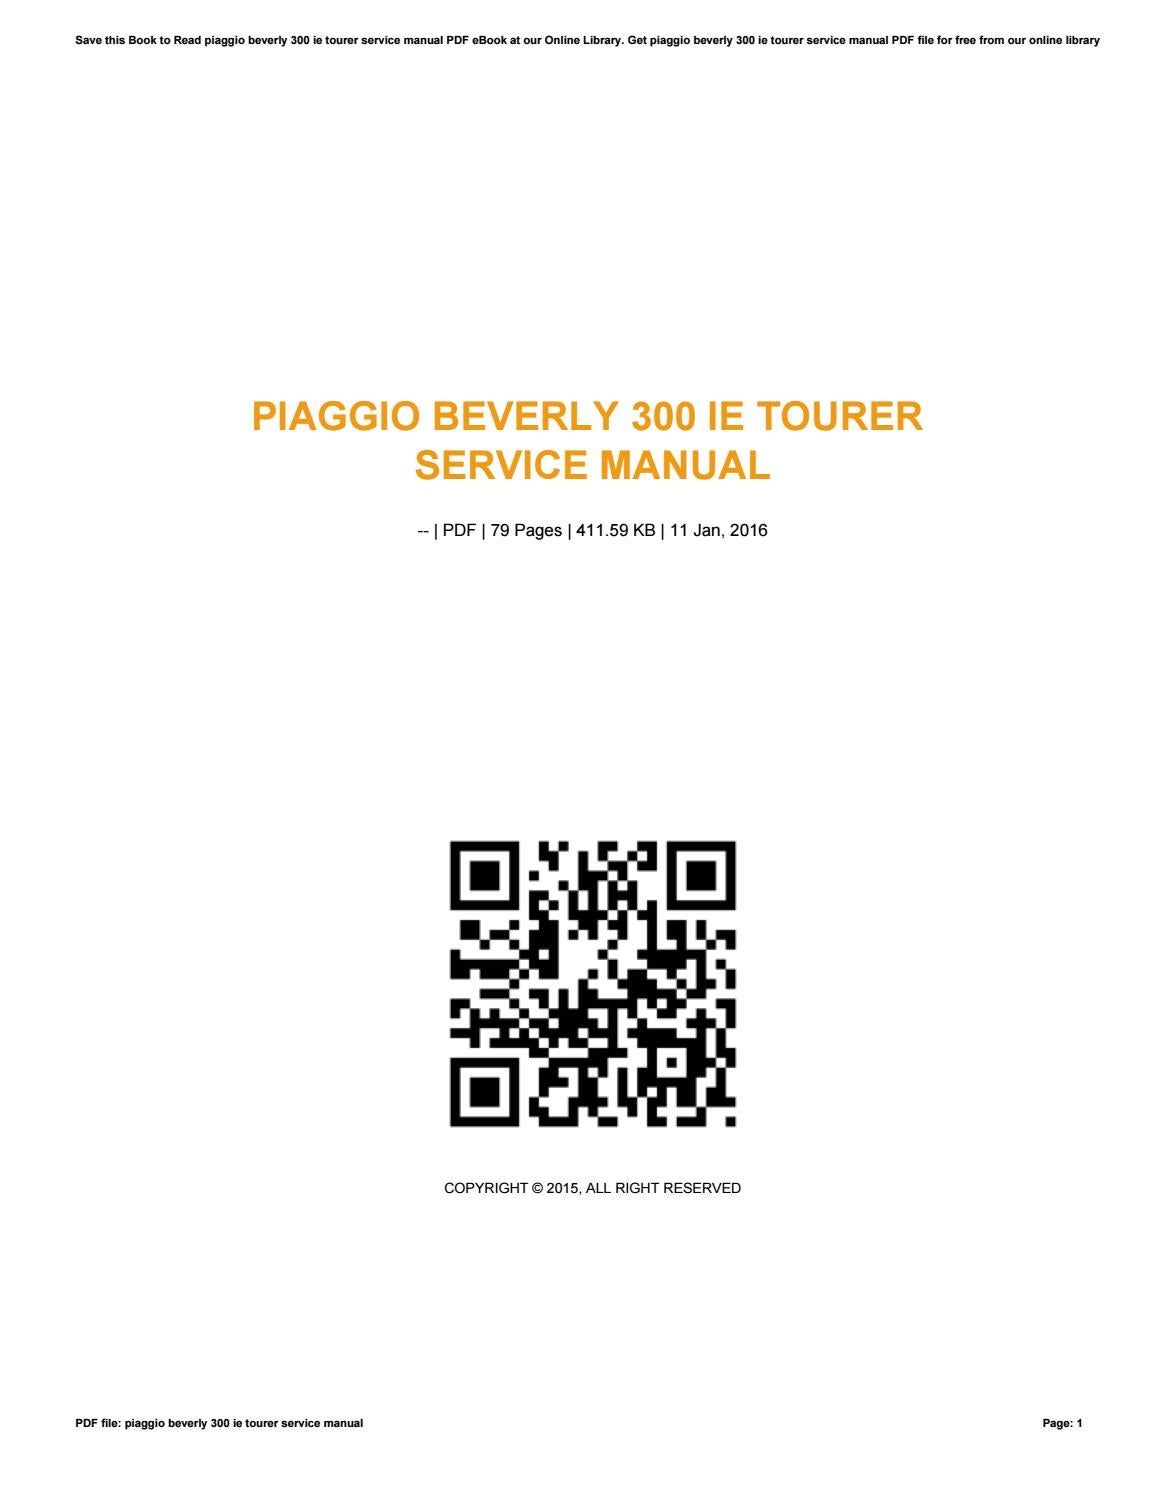 Piaggio beverly 300 ie tourer service manual by e